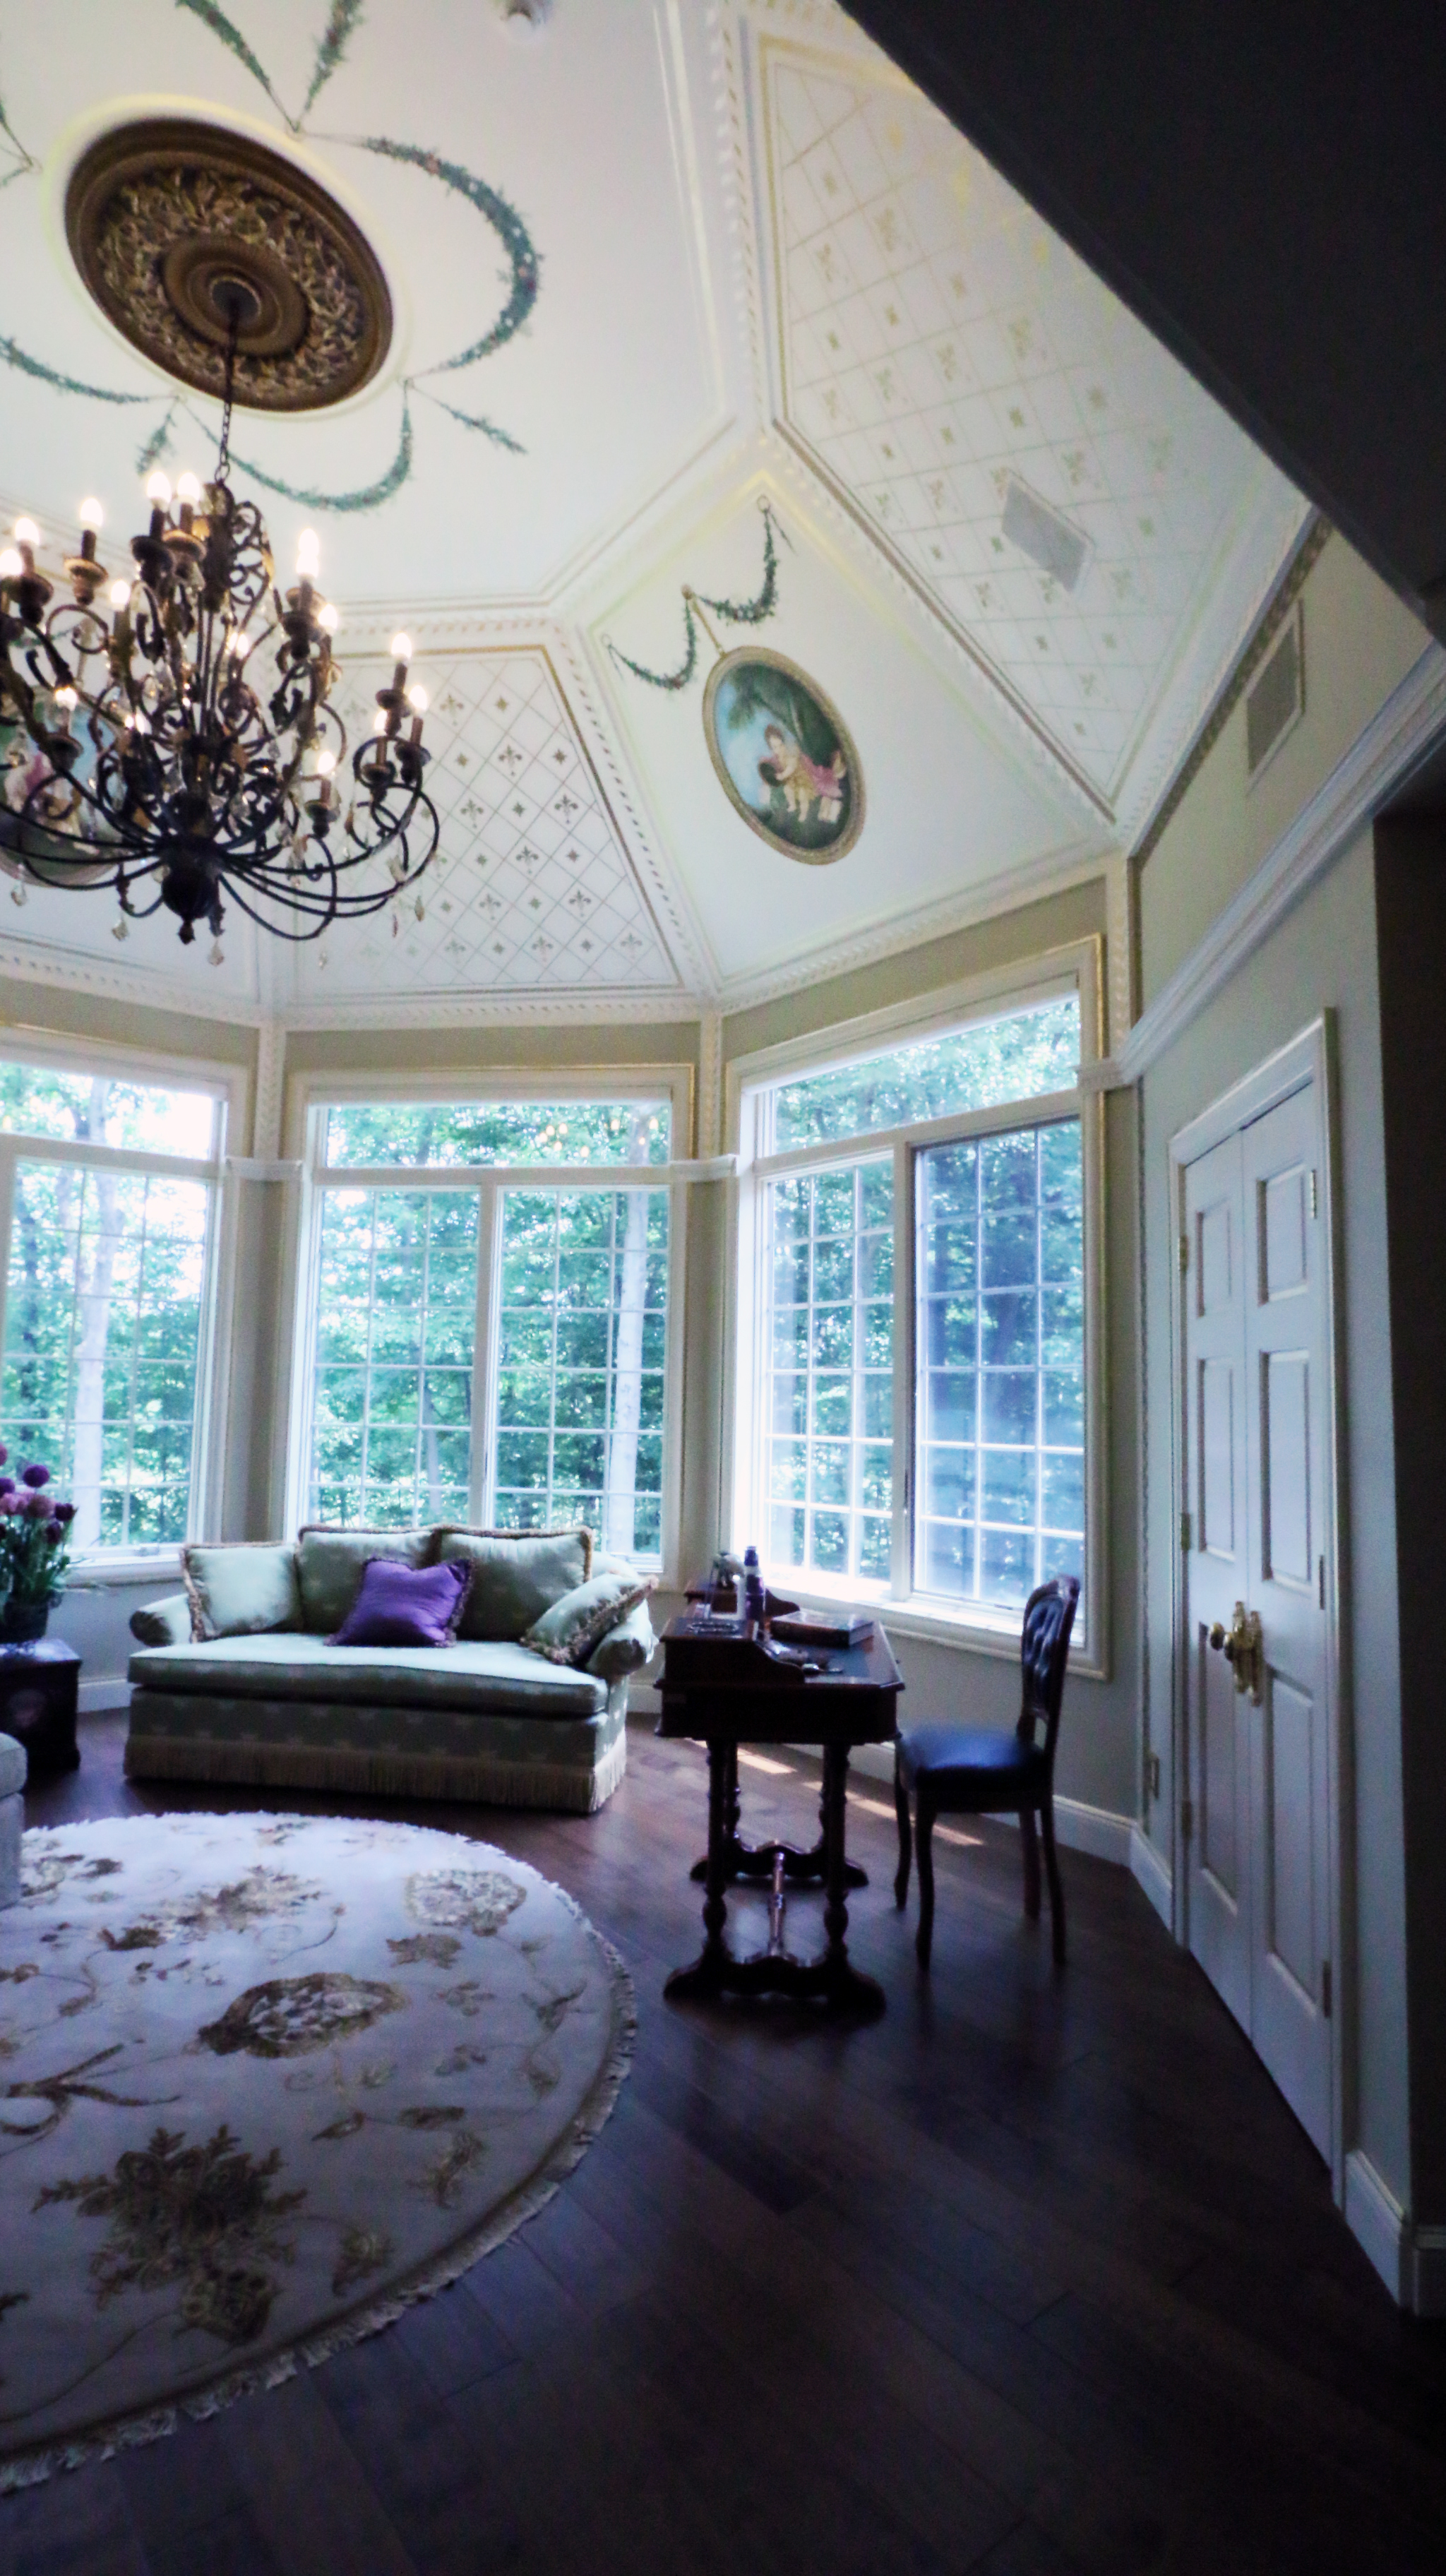 Mural and Ceiling Dome Saddle River